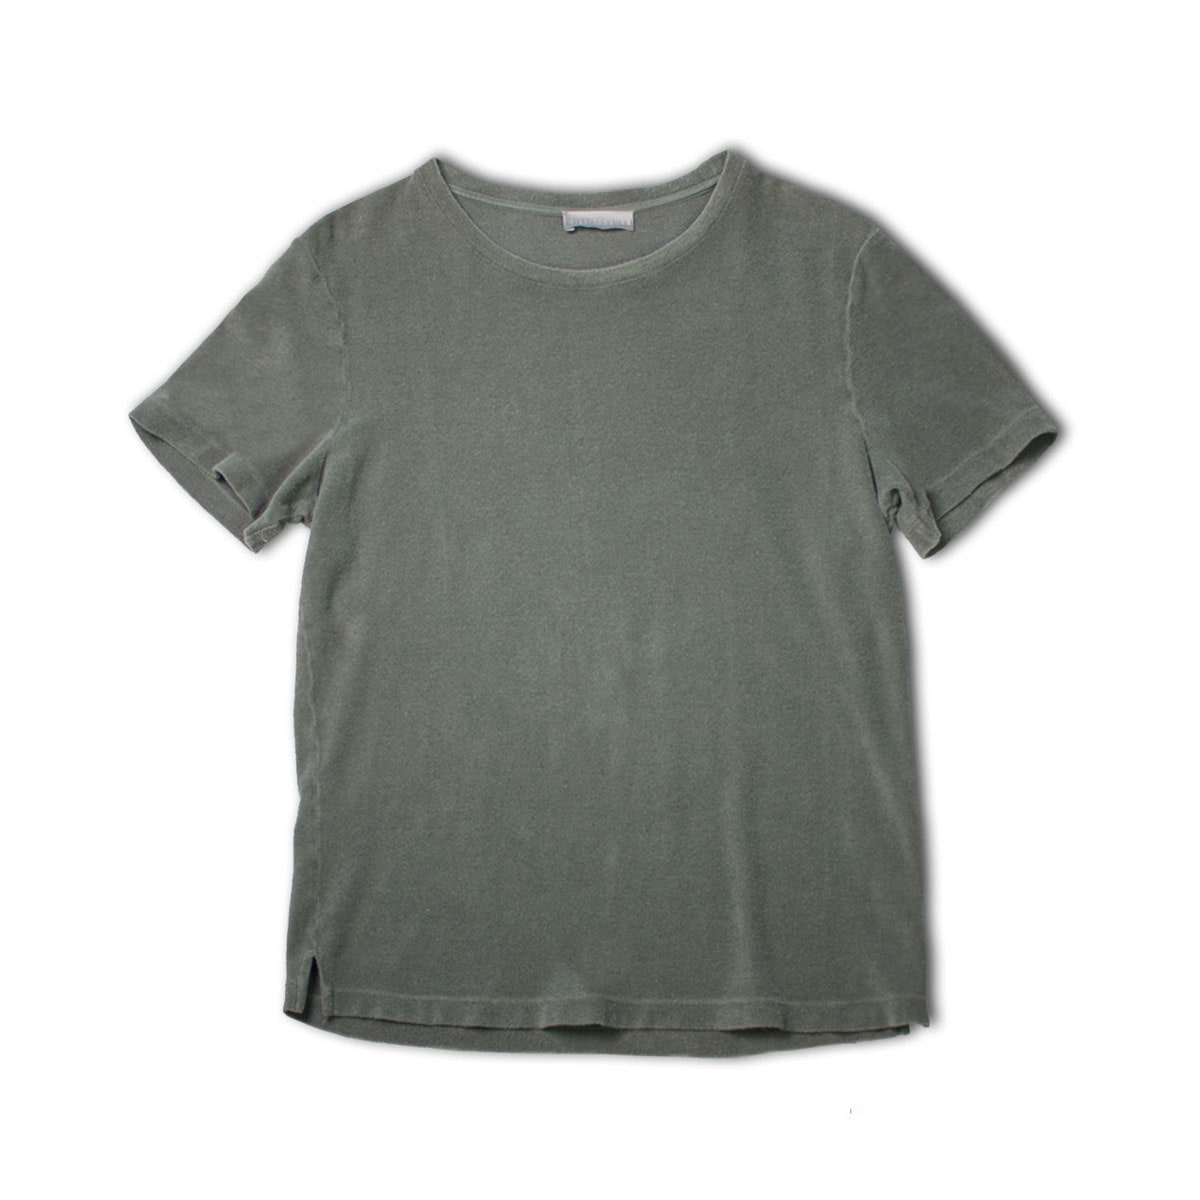 [GIRELLI BRUNI] WIDE NECK TERRY COLTH T-SHIRT 'KHAKI'